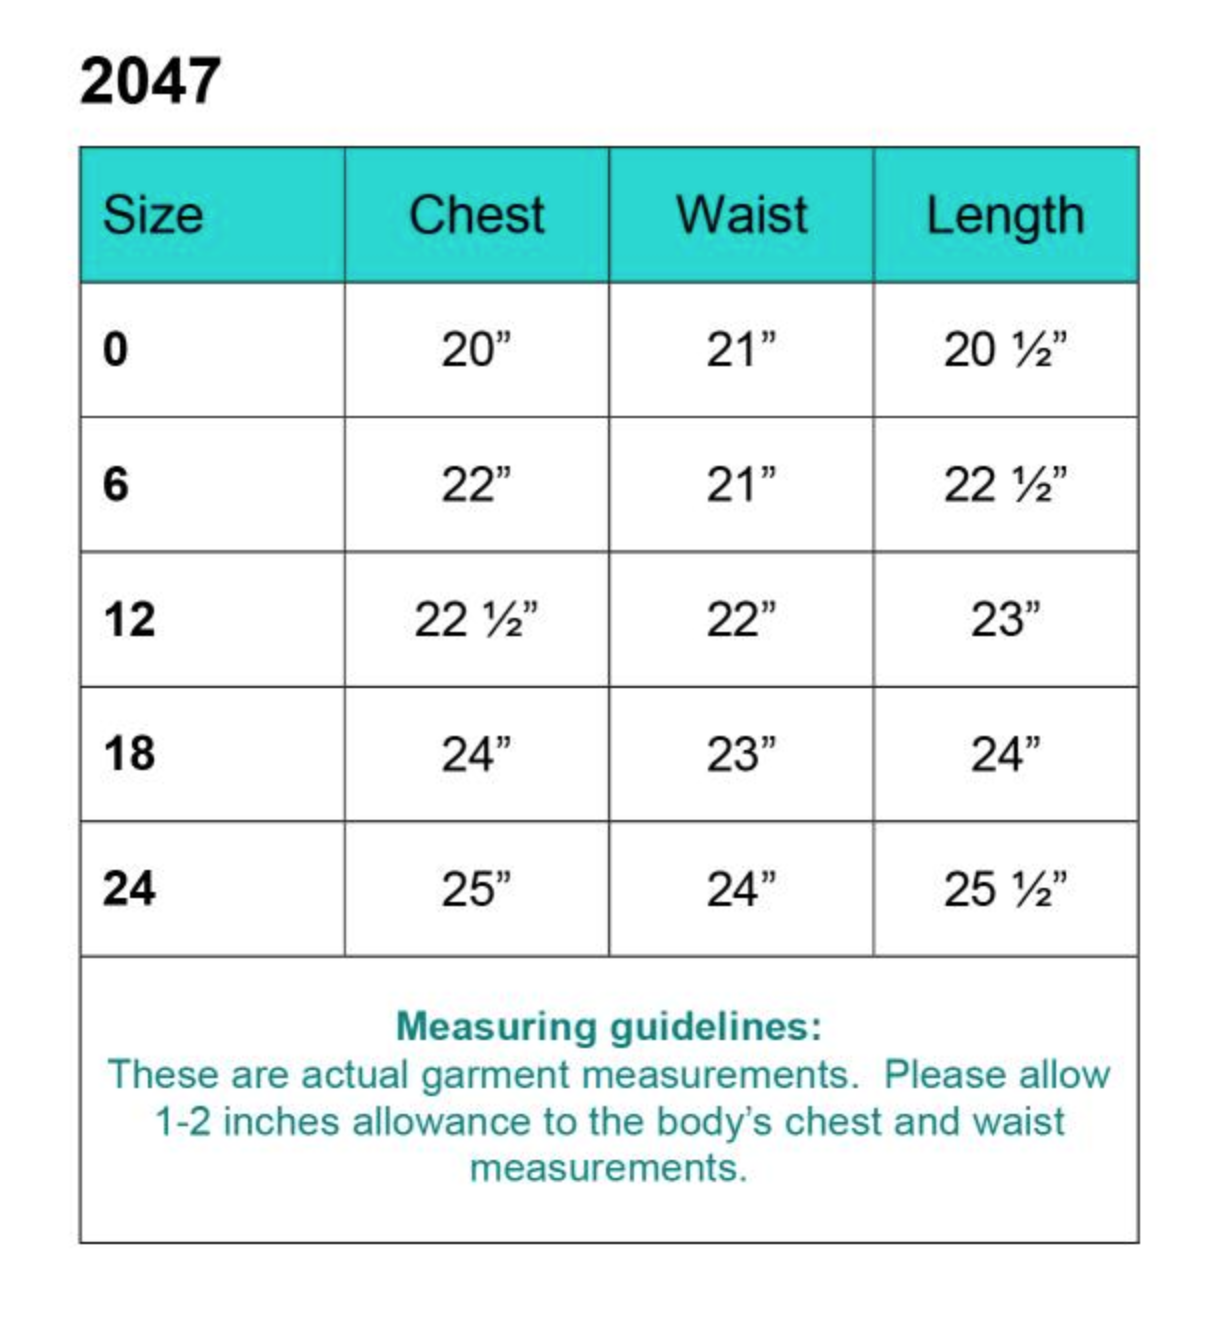 sizing-chart-2047.png